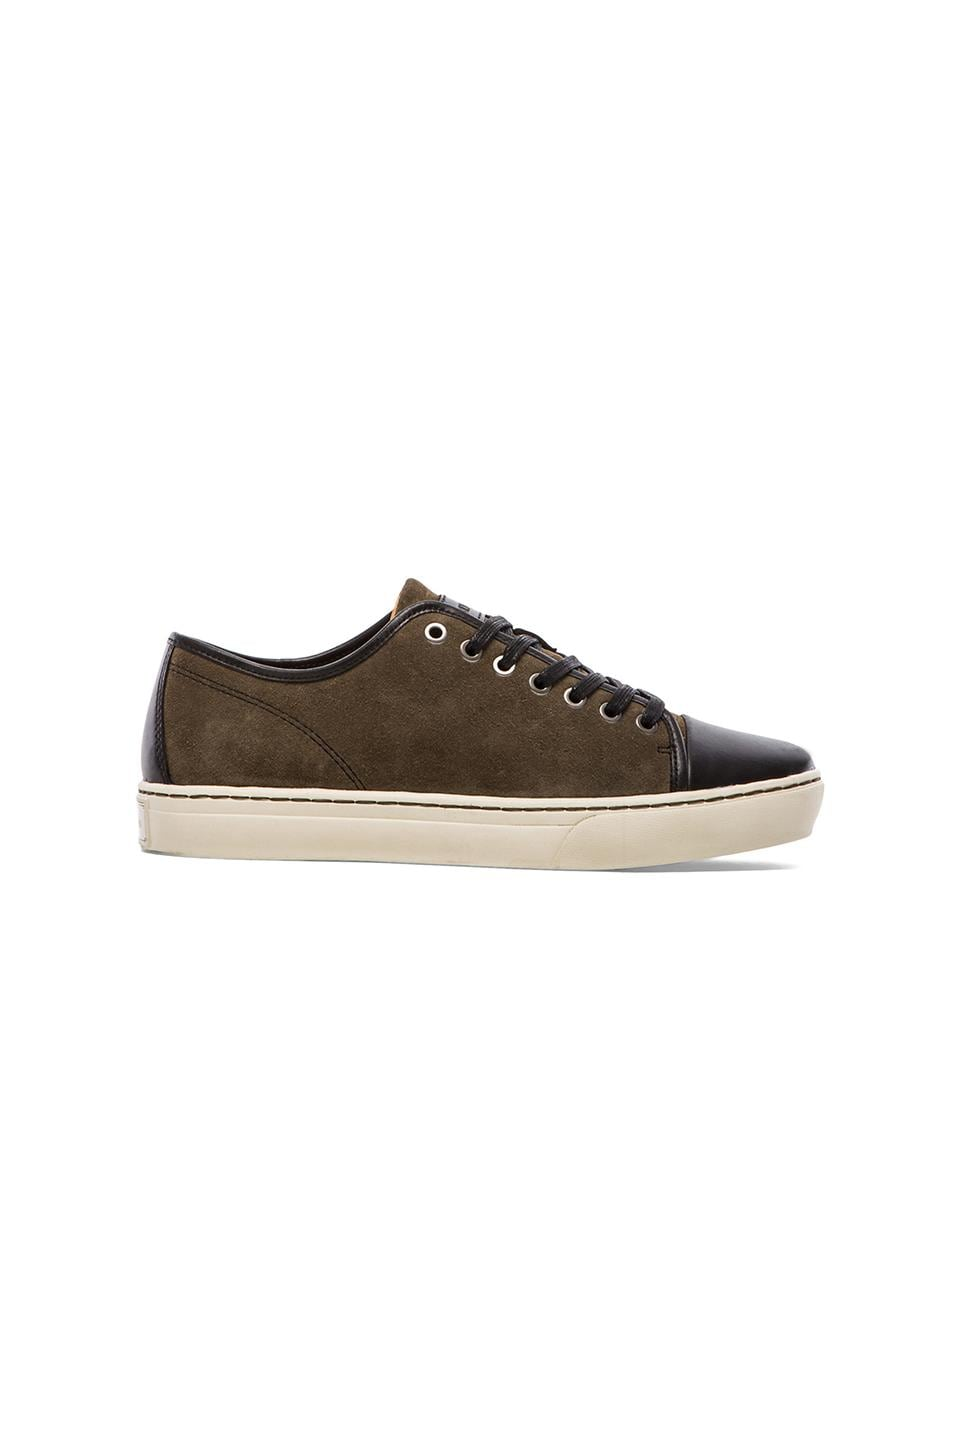 Abington Lightweight Guide Ox Sneaker in Olive Suede w/ Black